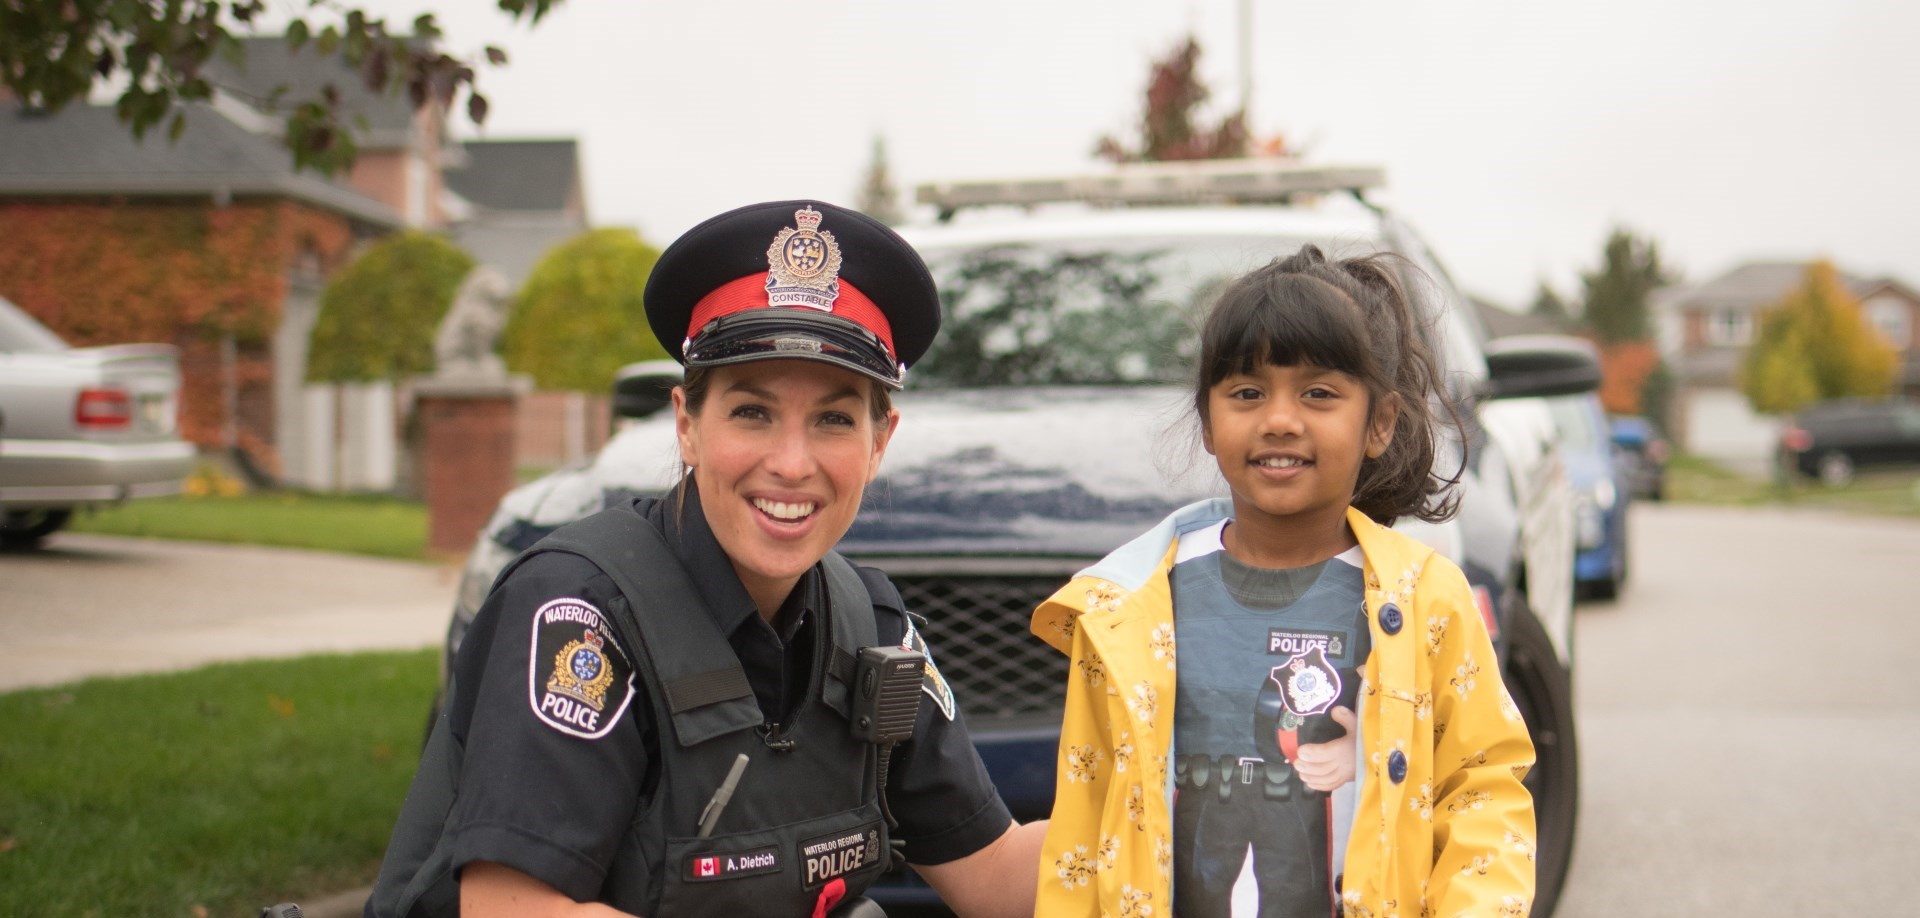 WRPS constable and child in front of cruiser